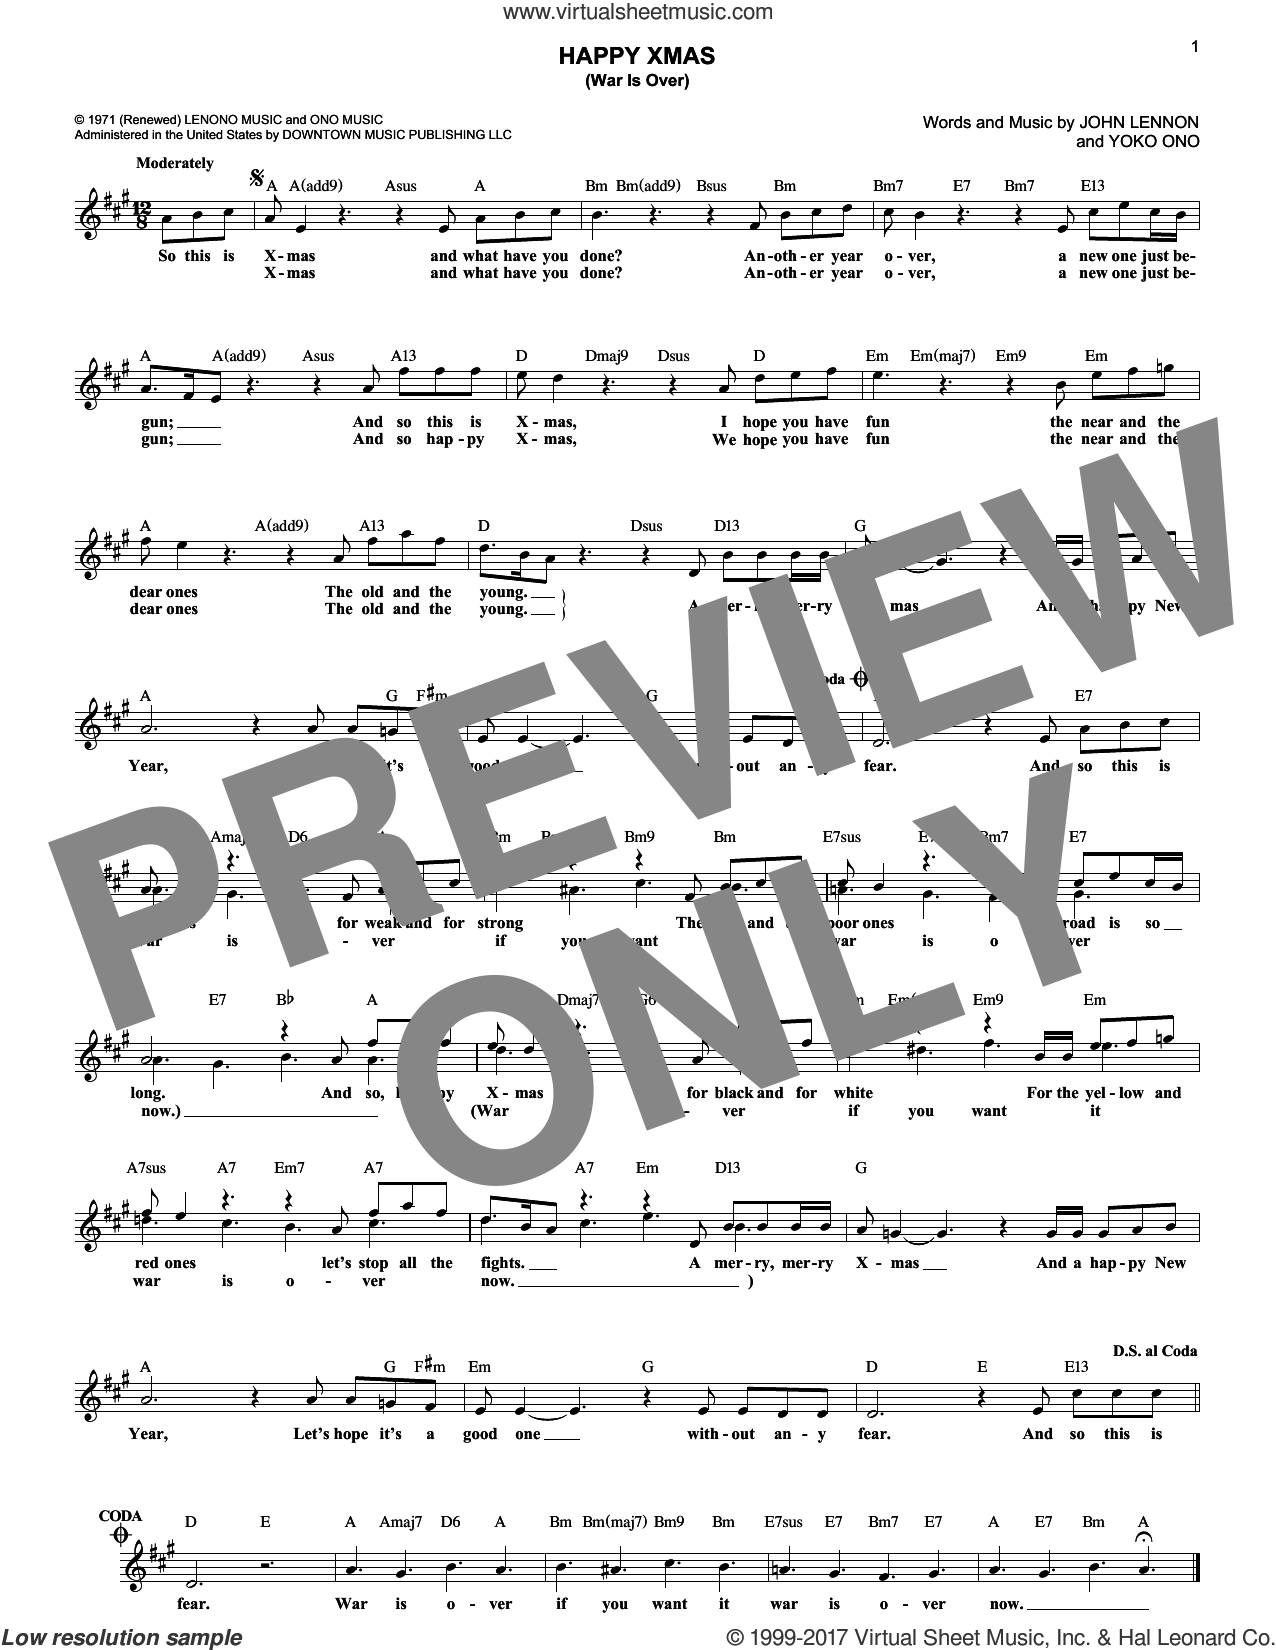 Happy Xmas (War Is Over) sheet music for voice and other instruments (fake book) by John Lennon, Sarah McLachlan and Yoko Ono, intermediate skill level